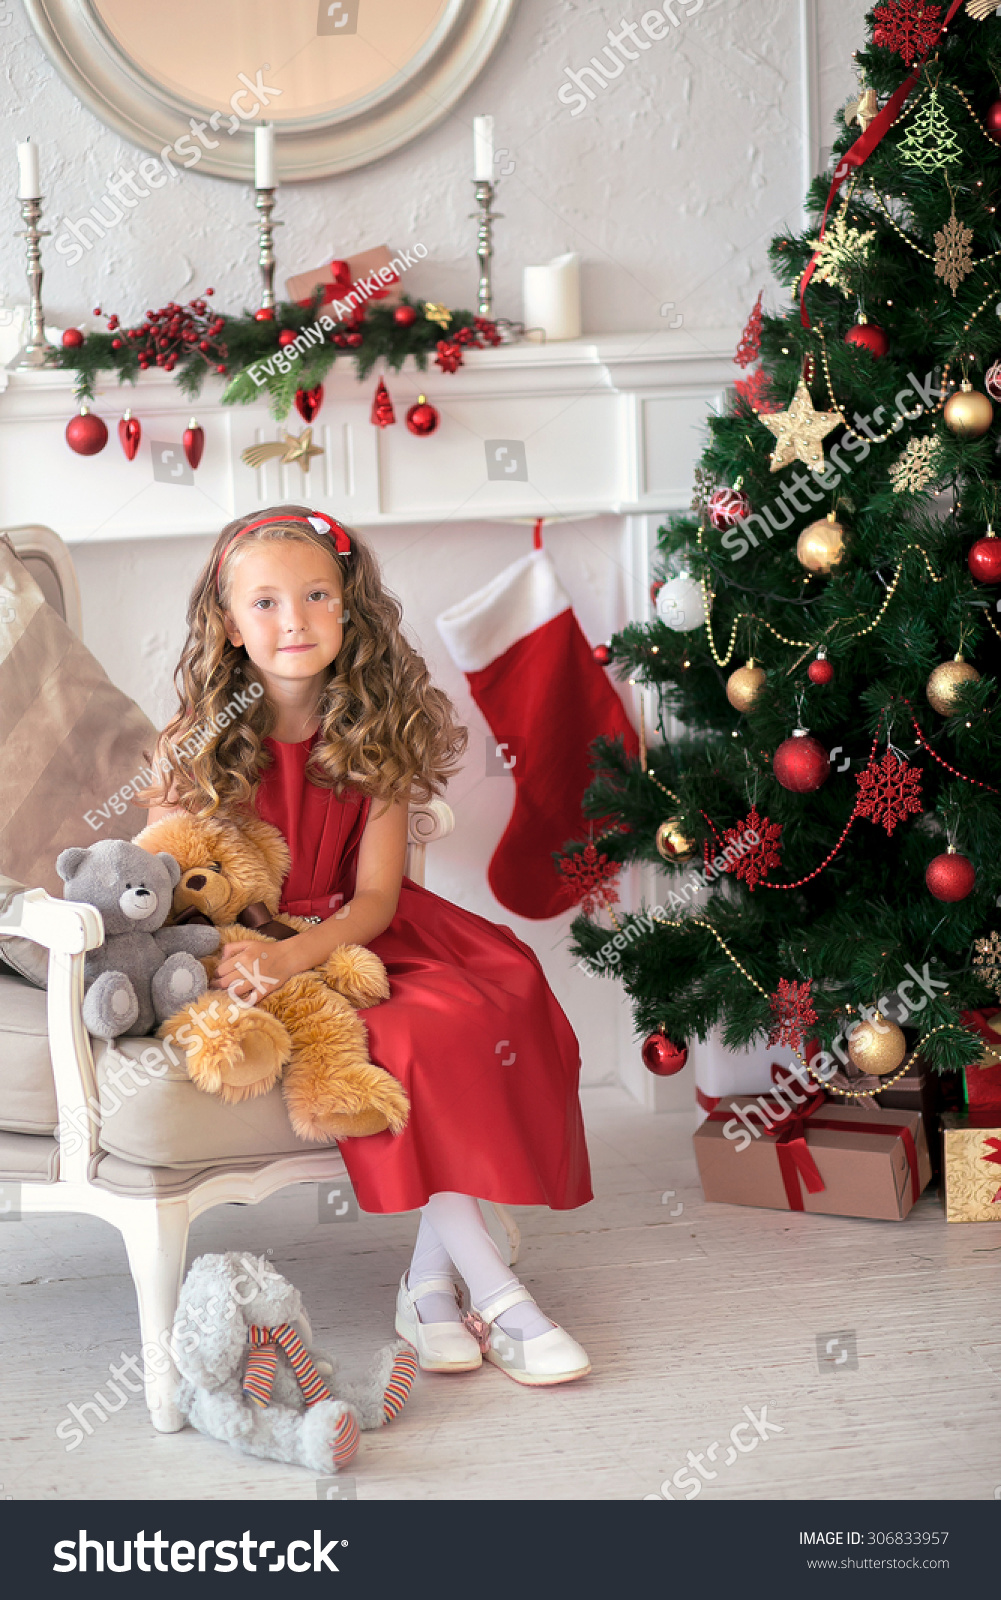 Toys Under Christmas Tree : Merry christmas smiling girl sitting with toys under the